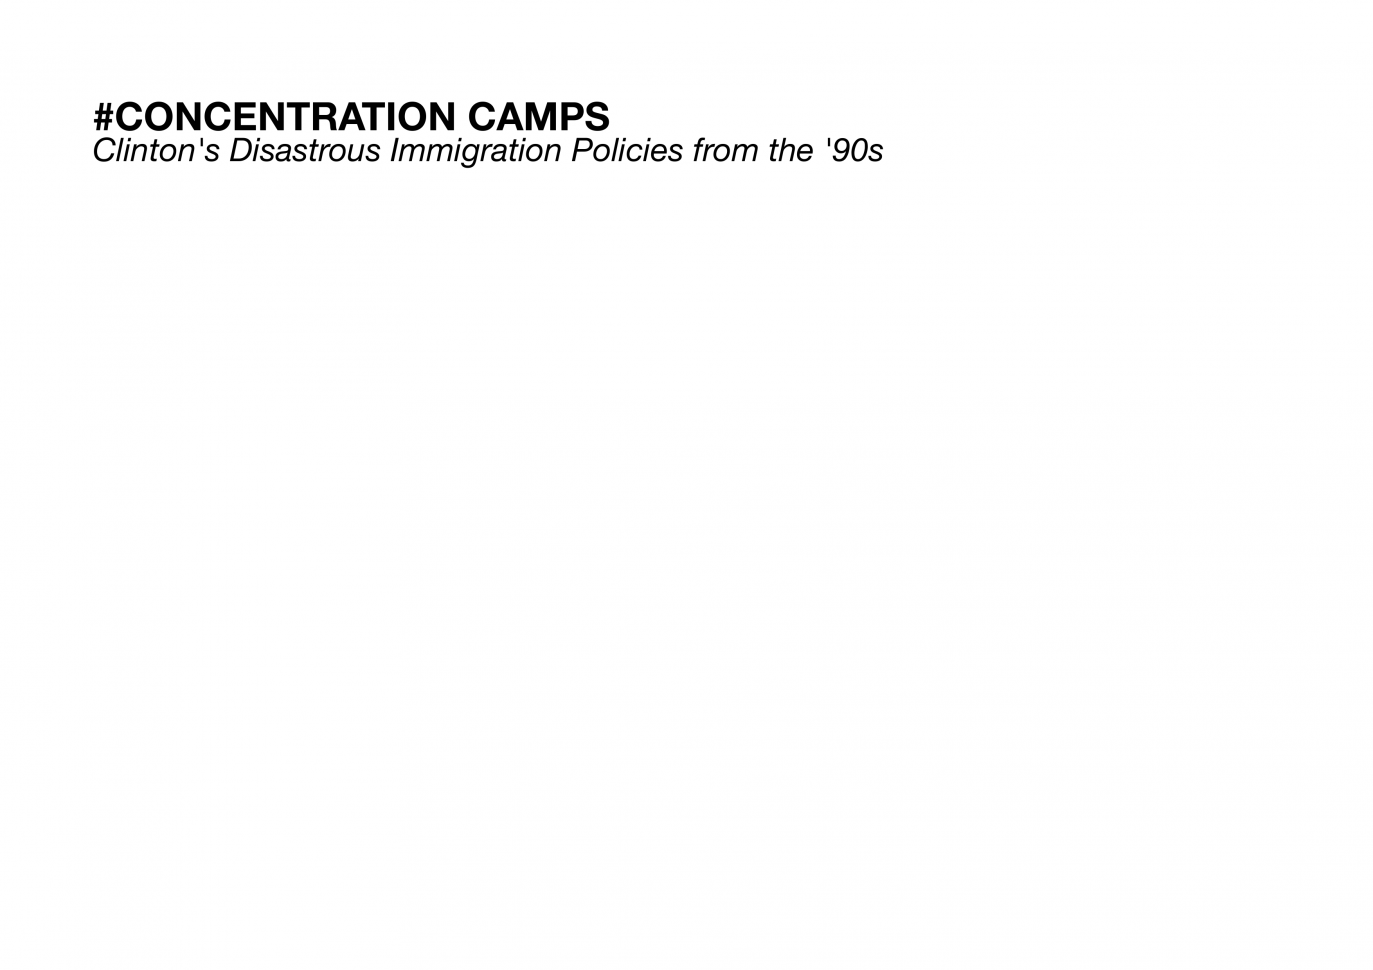 gallery/concentration camps; clinton's policies from the 90s - dara lind - edited by ismael ogando - ground - february 2020 - 01